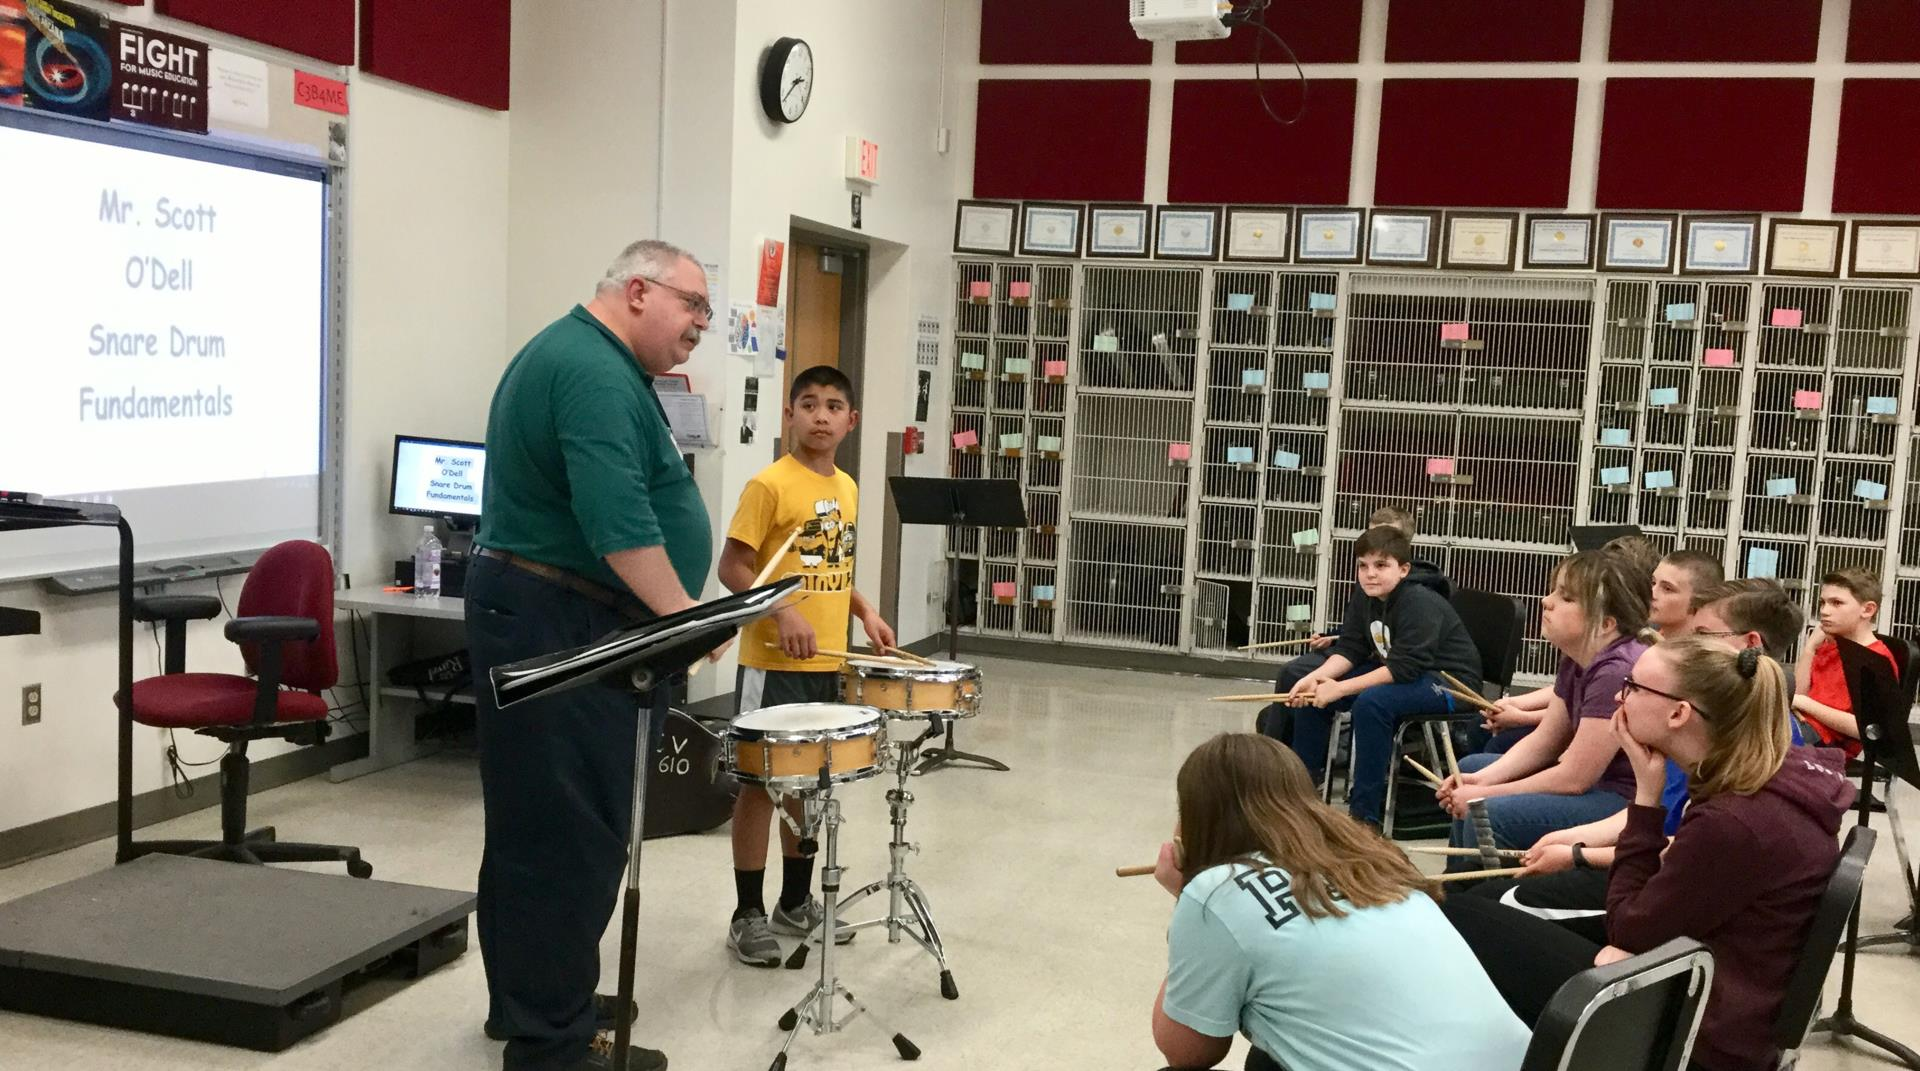 masterclass instructor working with students